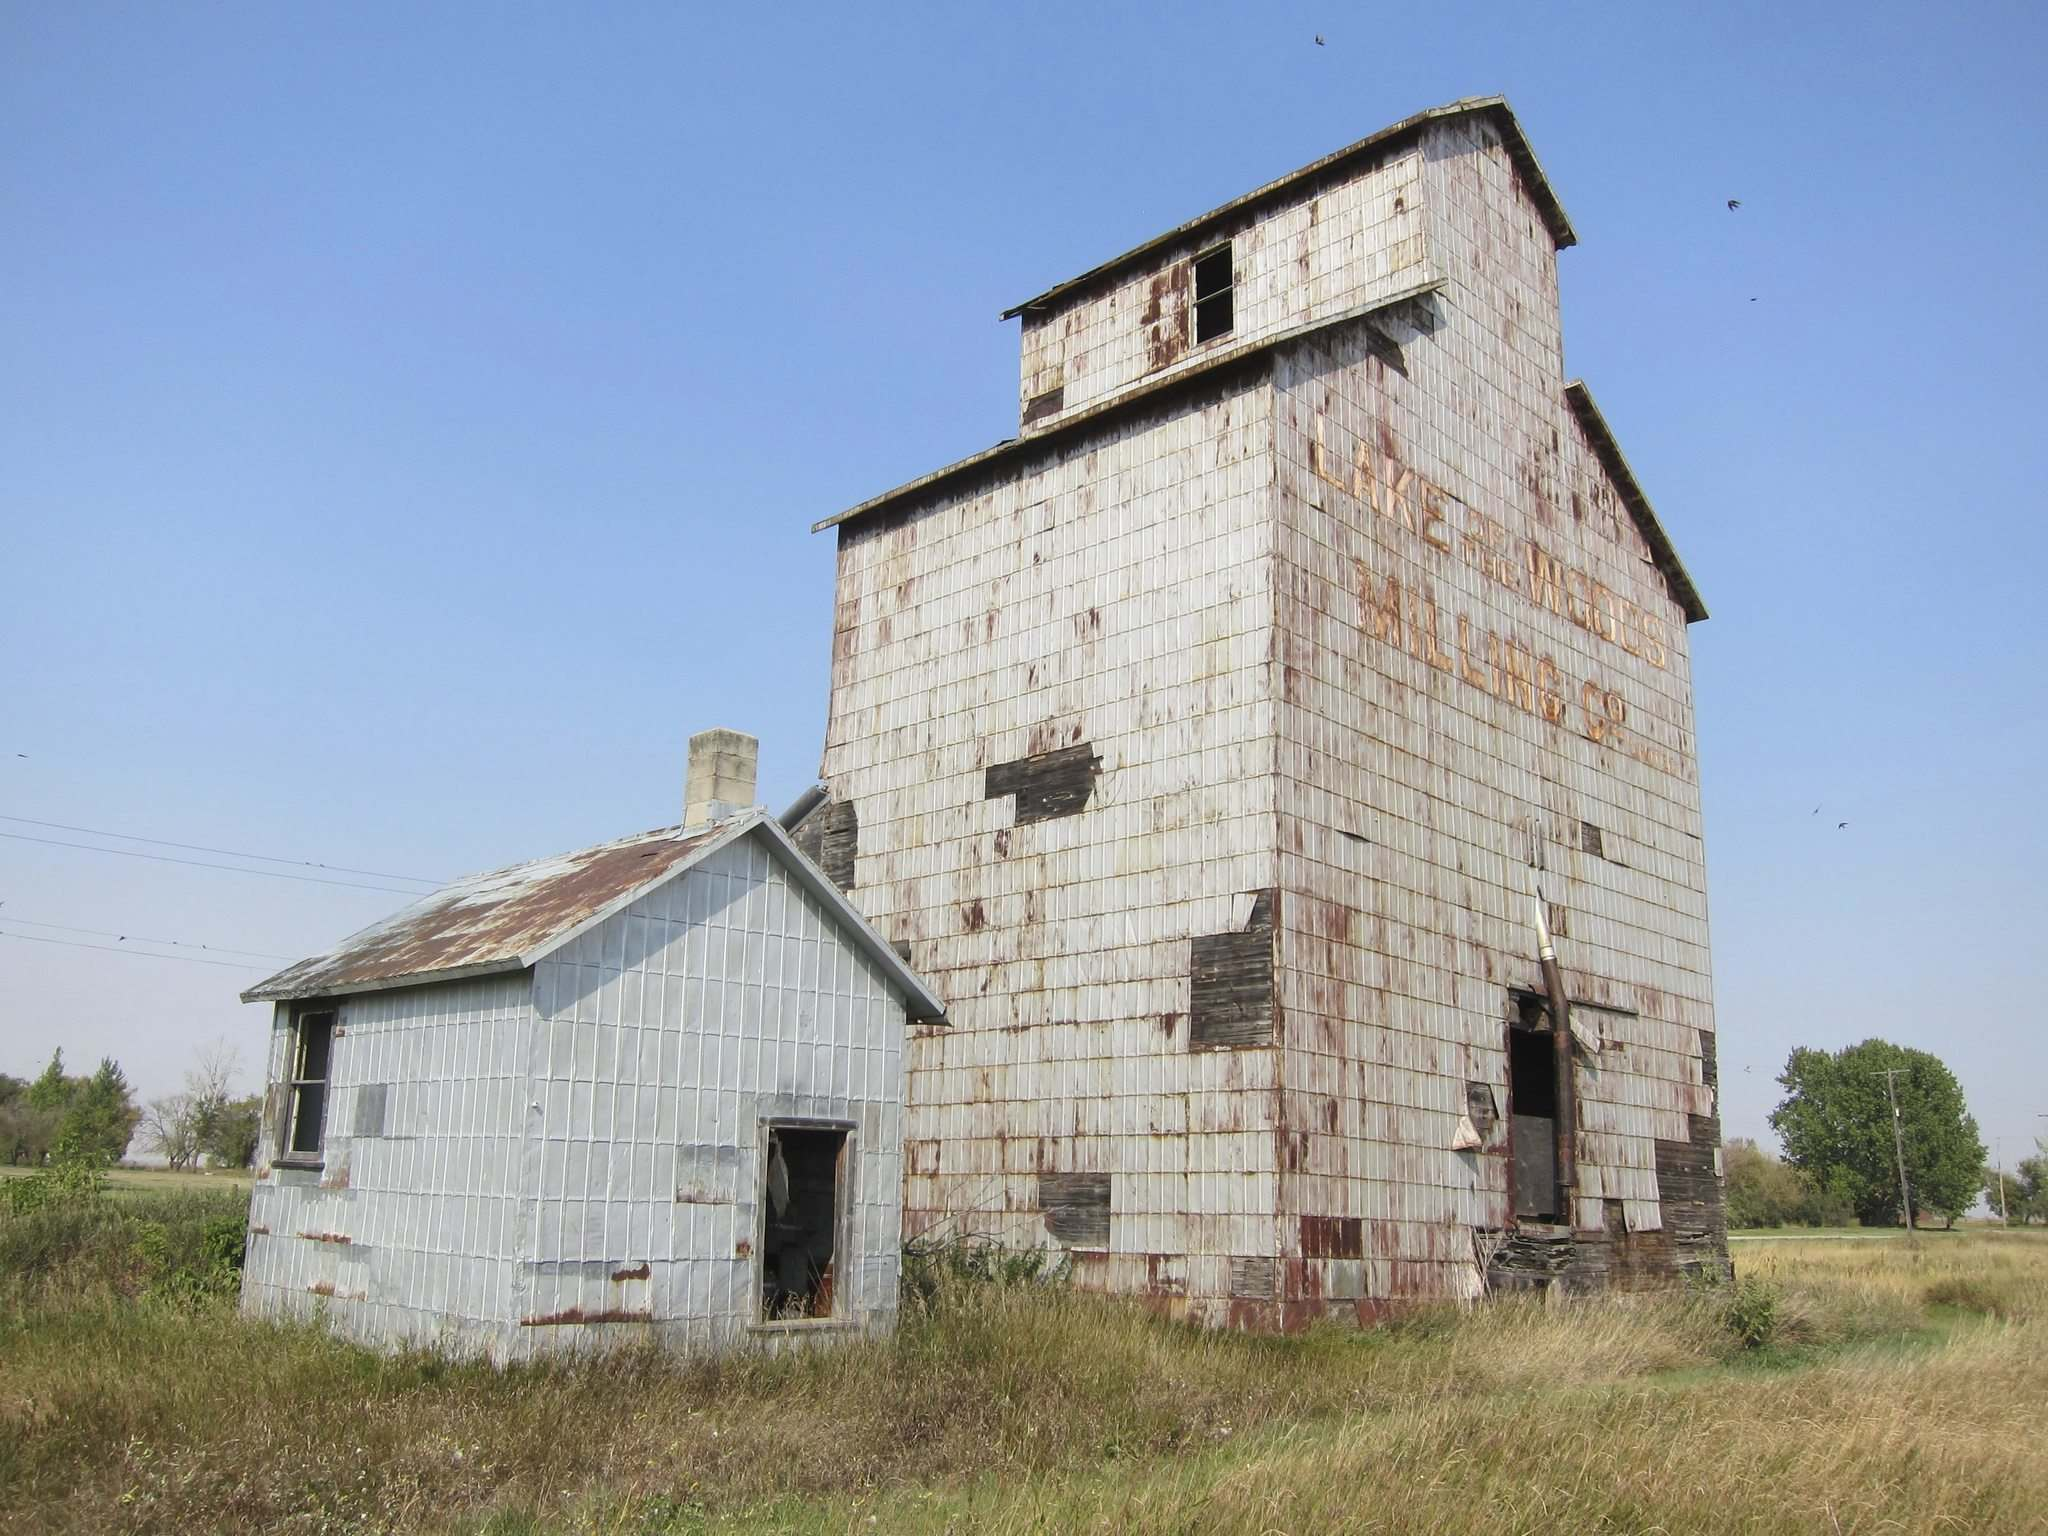 The Elva grain elevator is believed to be the oldest one in Canada, built in the fall of 1897. (Gordon Goldsborough)